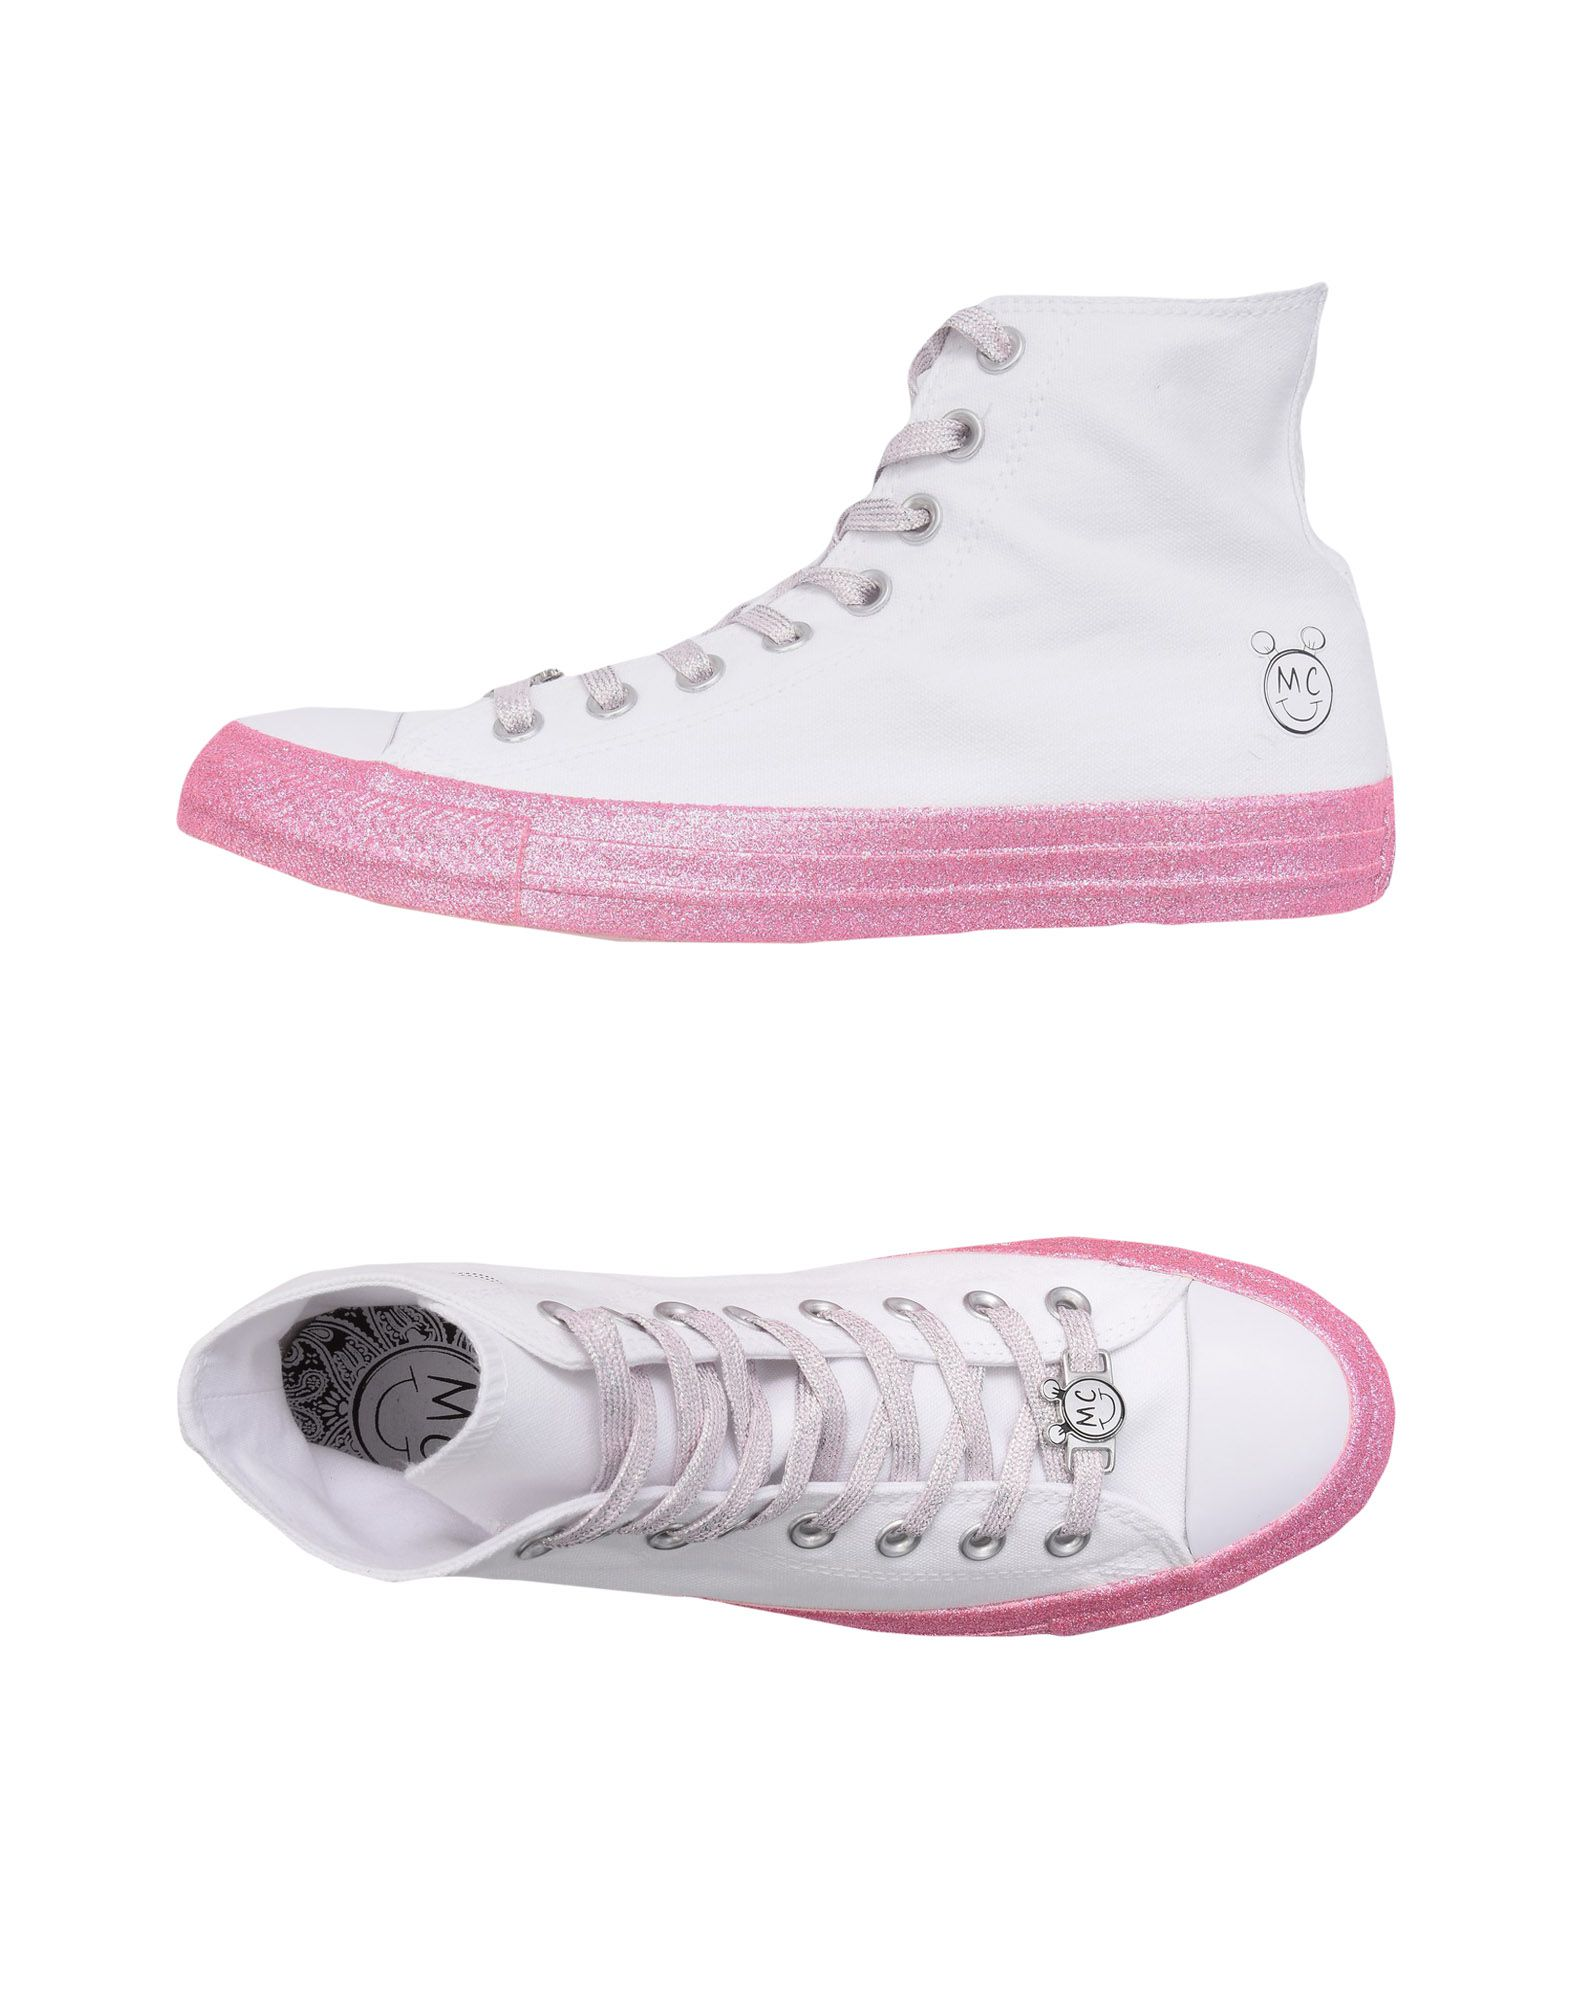 Sneakers Converse X Miley Cyrus Ctas Hi White/Pink Dogwood/Black - Donna - 11493830BJ